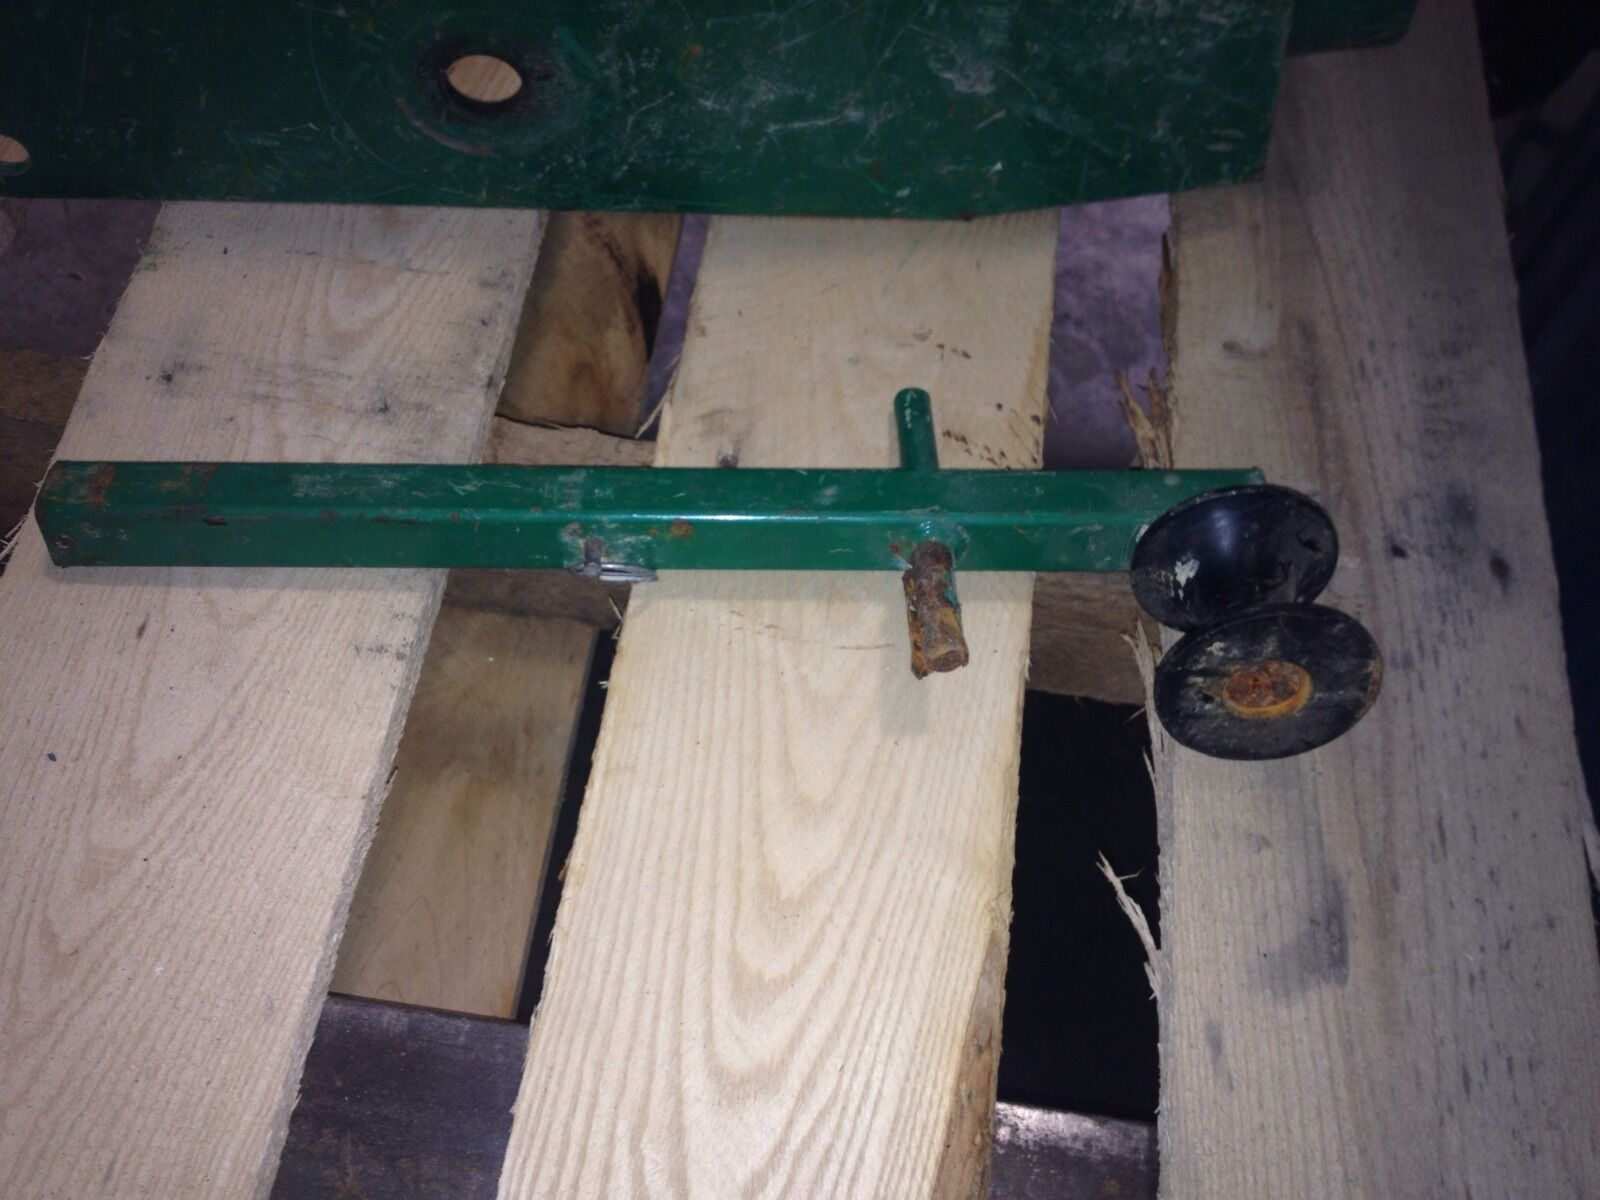 GREENLEE ULTRA TUGGER 6800 Cable Puller Rope Guide Wheel - $100.00 ...